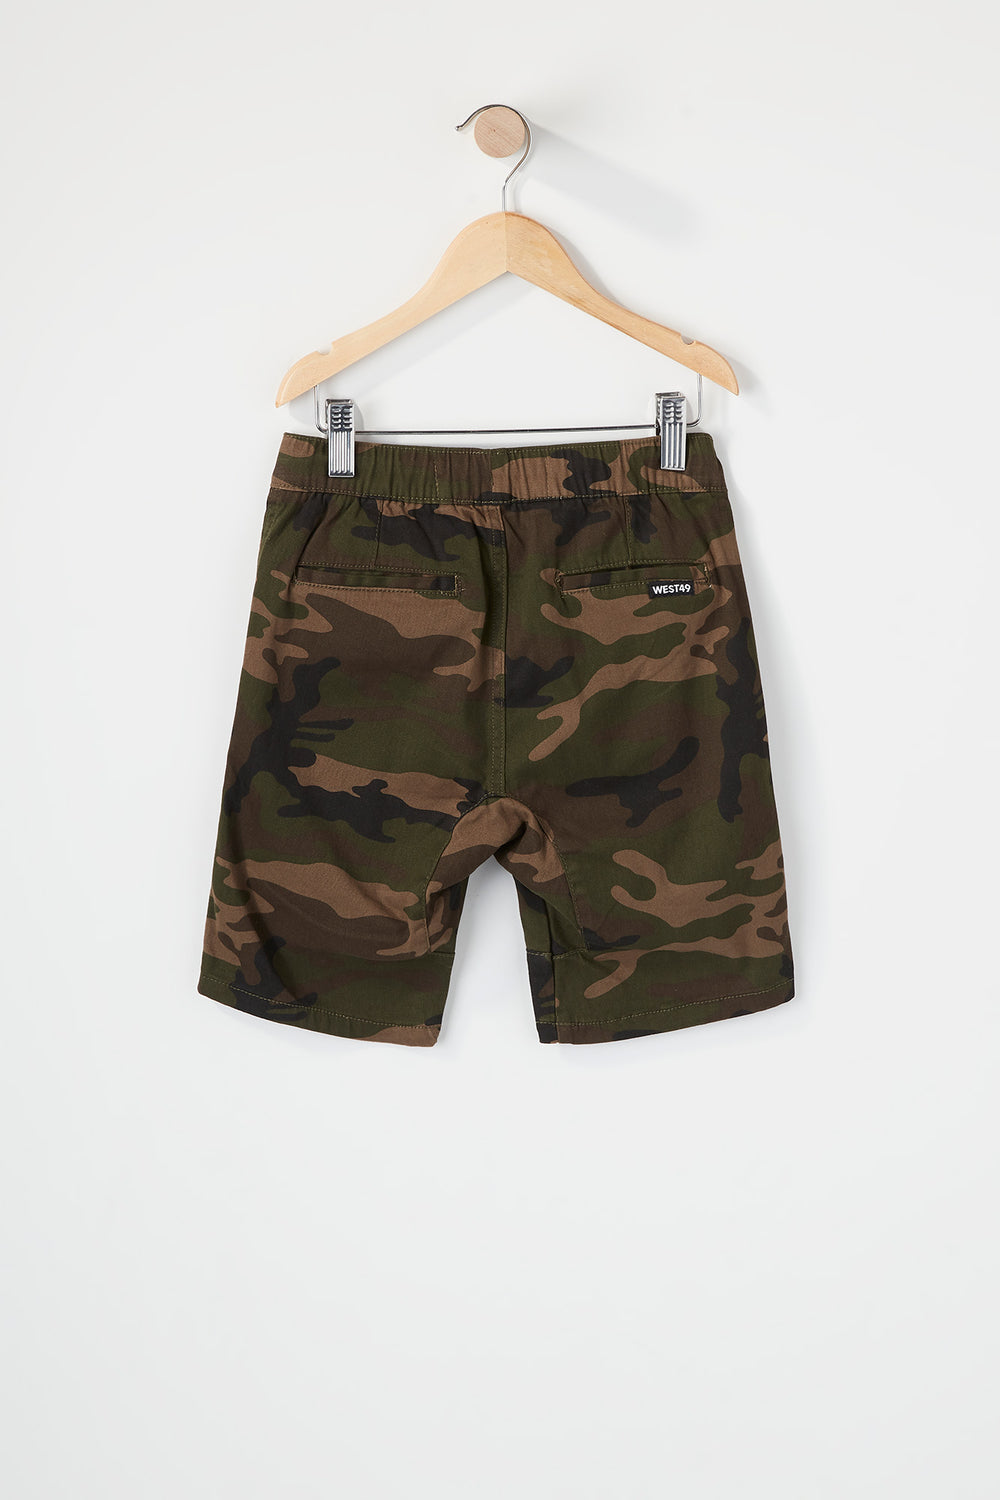 West49 Boys Camo Jogger Short Camouflage